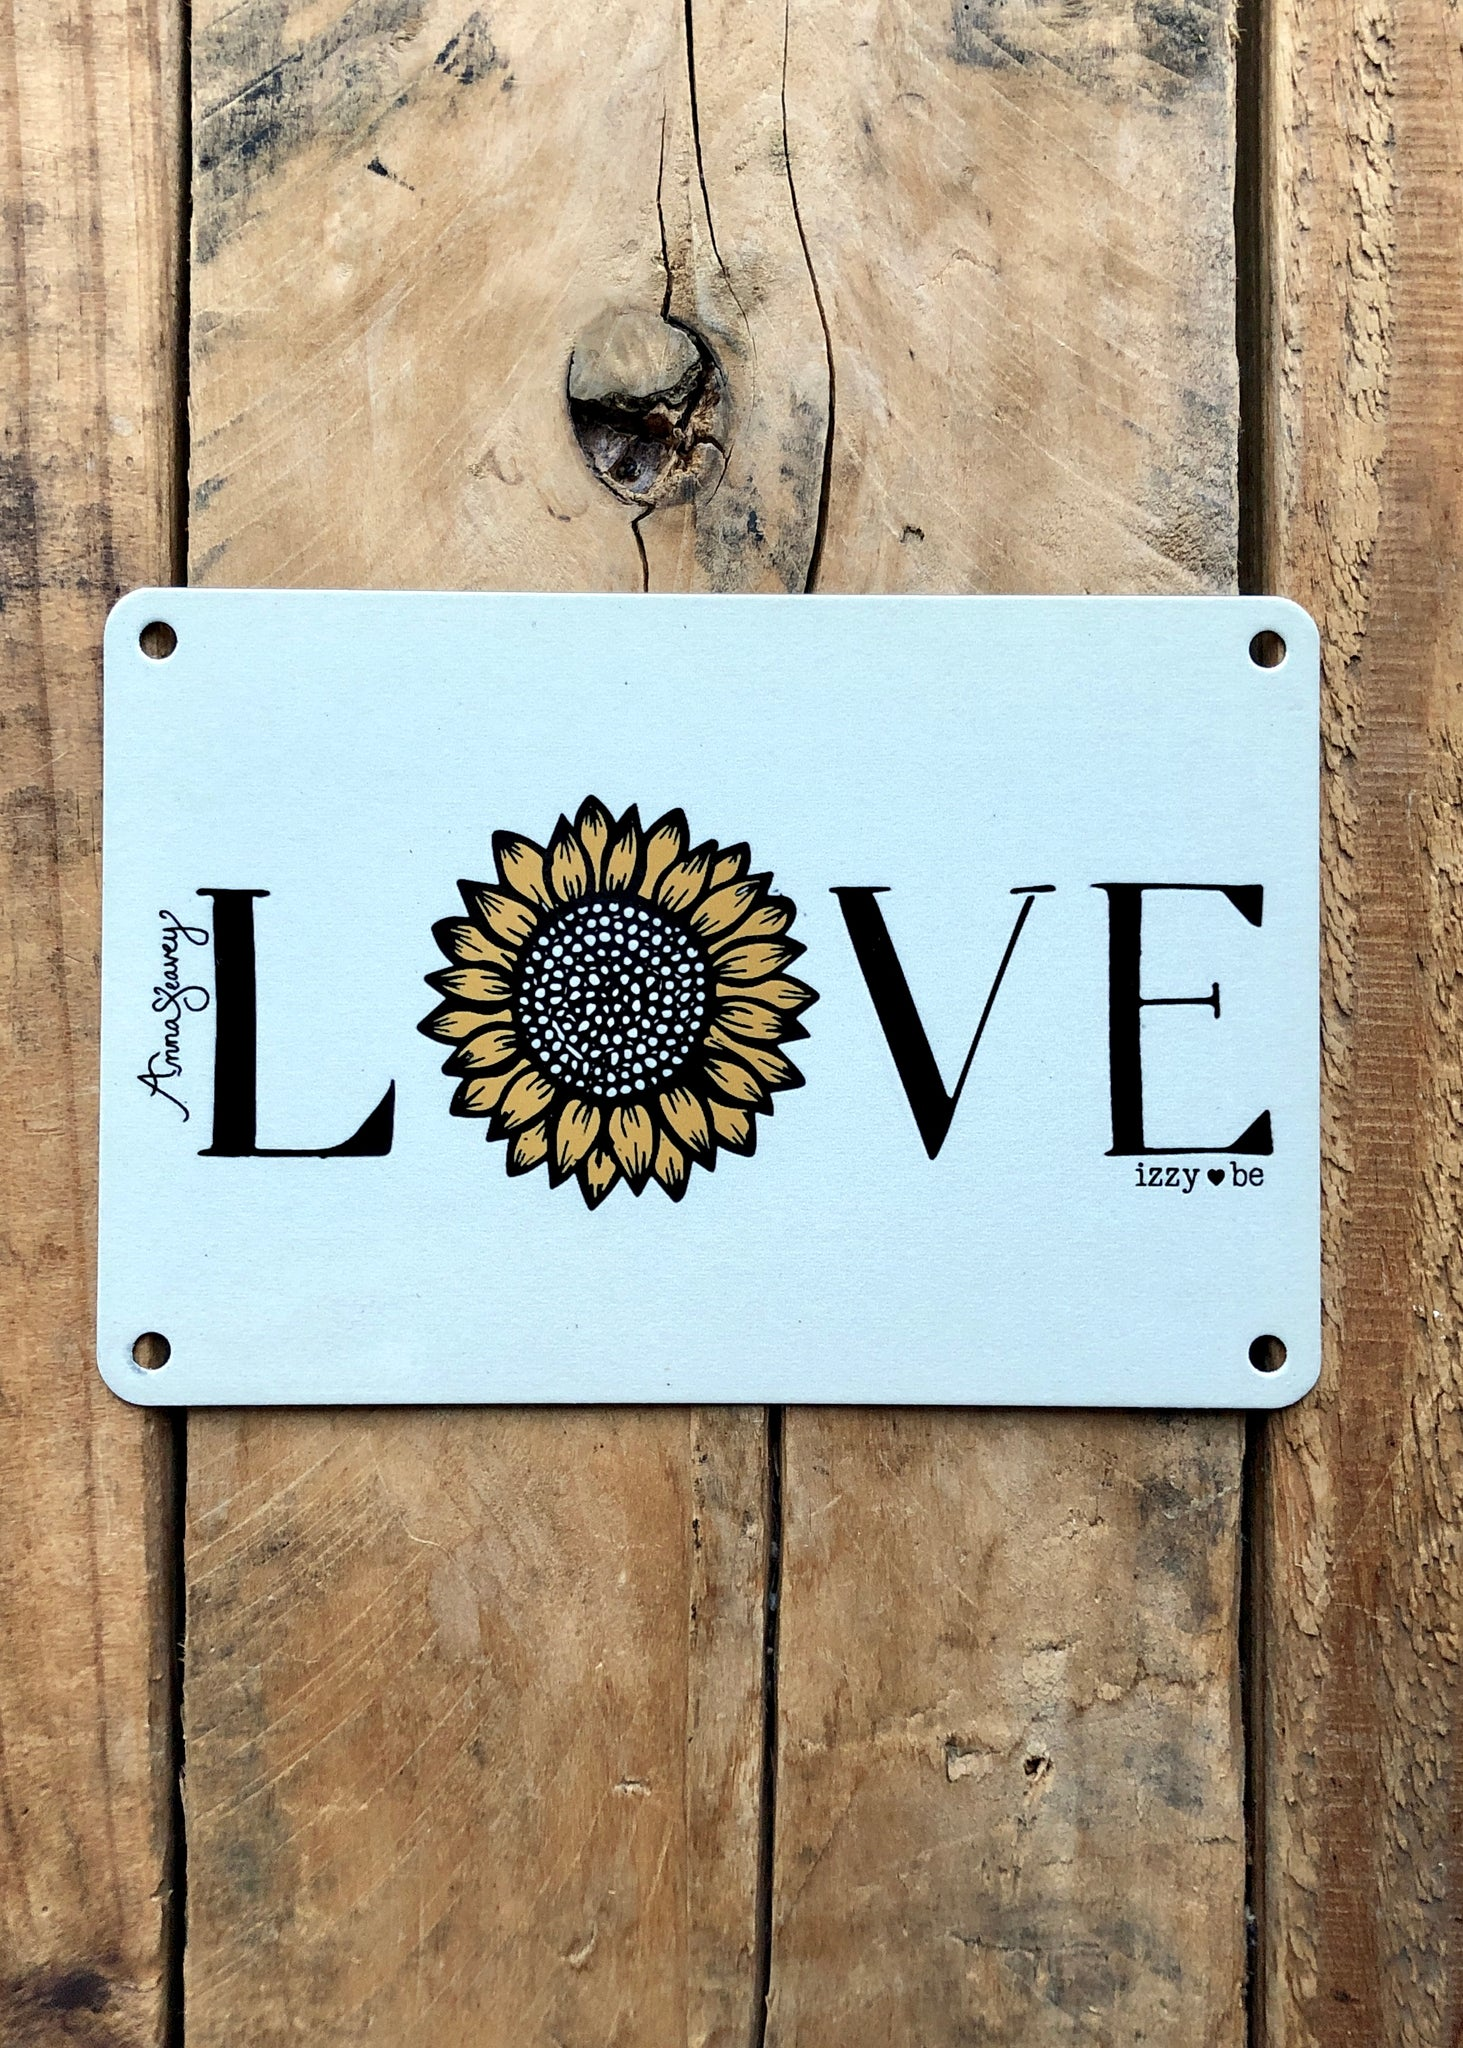 Sunflower Love Vintage Metal Postcard Print